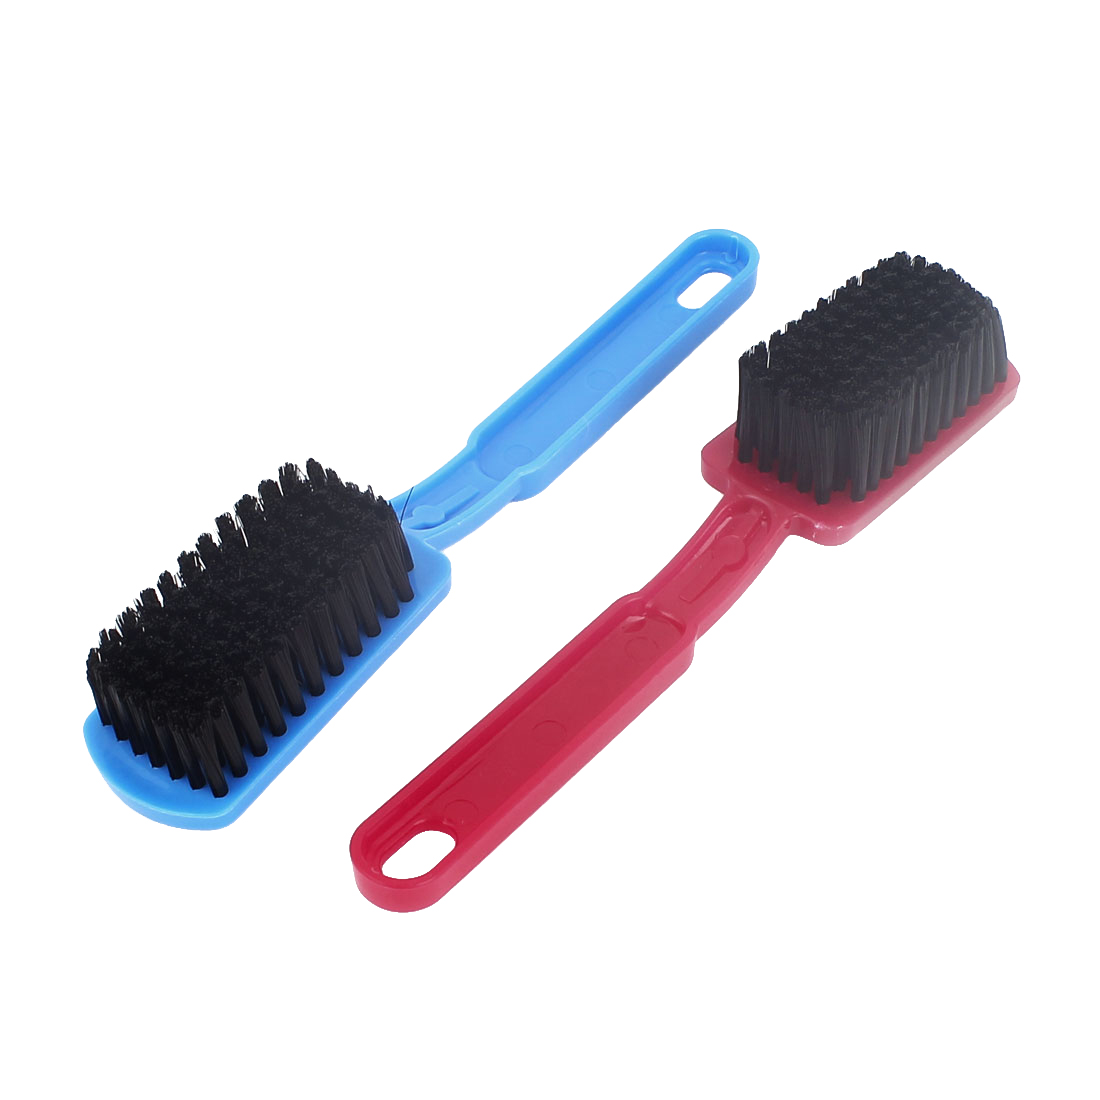 uxcell® Household Plastic Shoe Brushes Cleaning Wash Clothes Hard Brush Multi-function Cleaner Clear Brushes